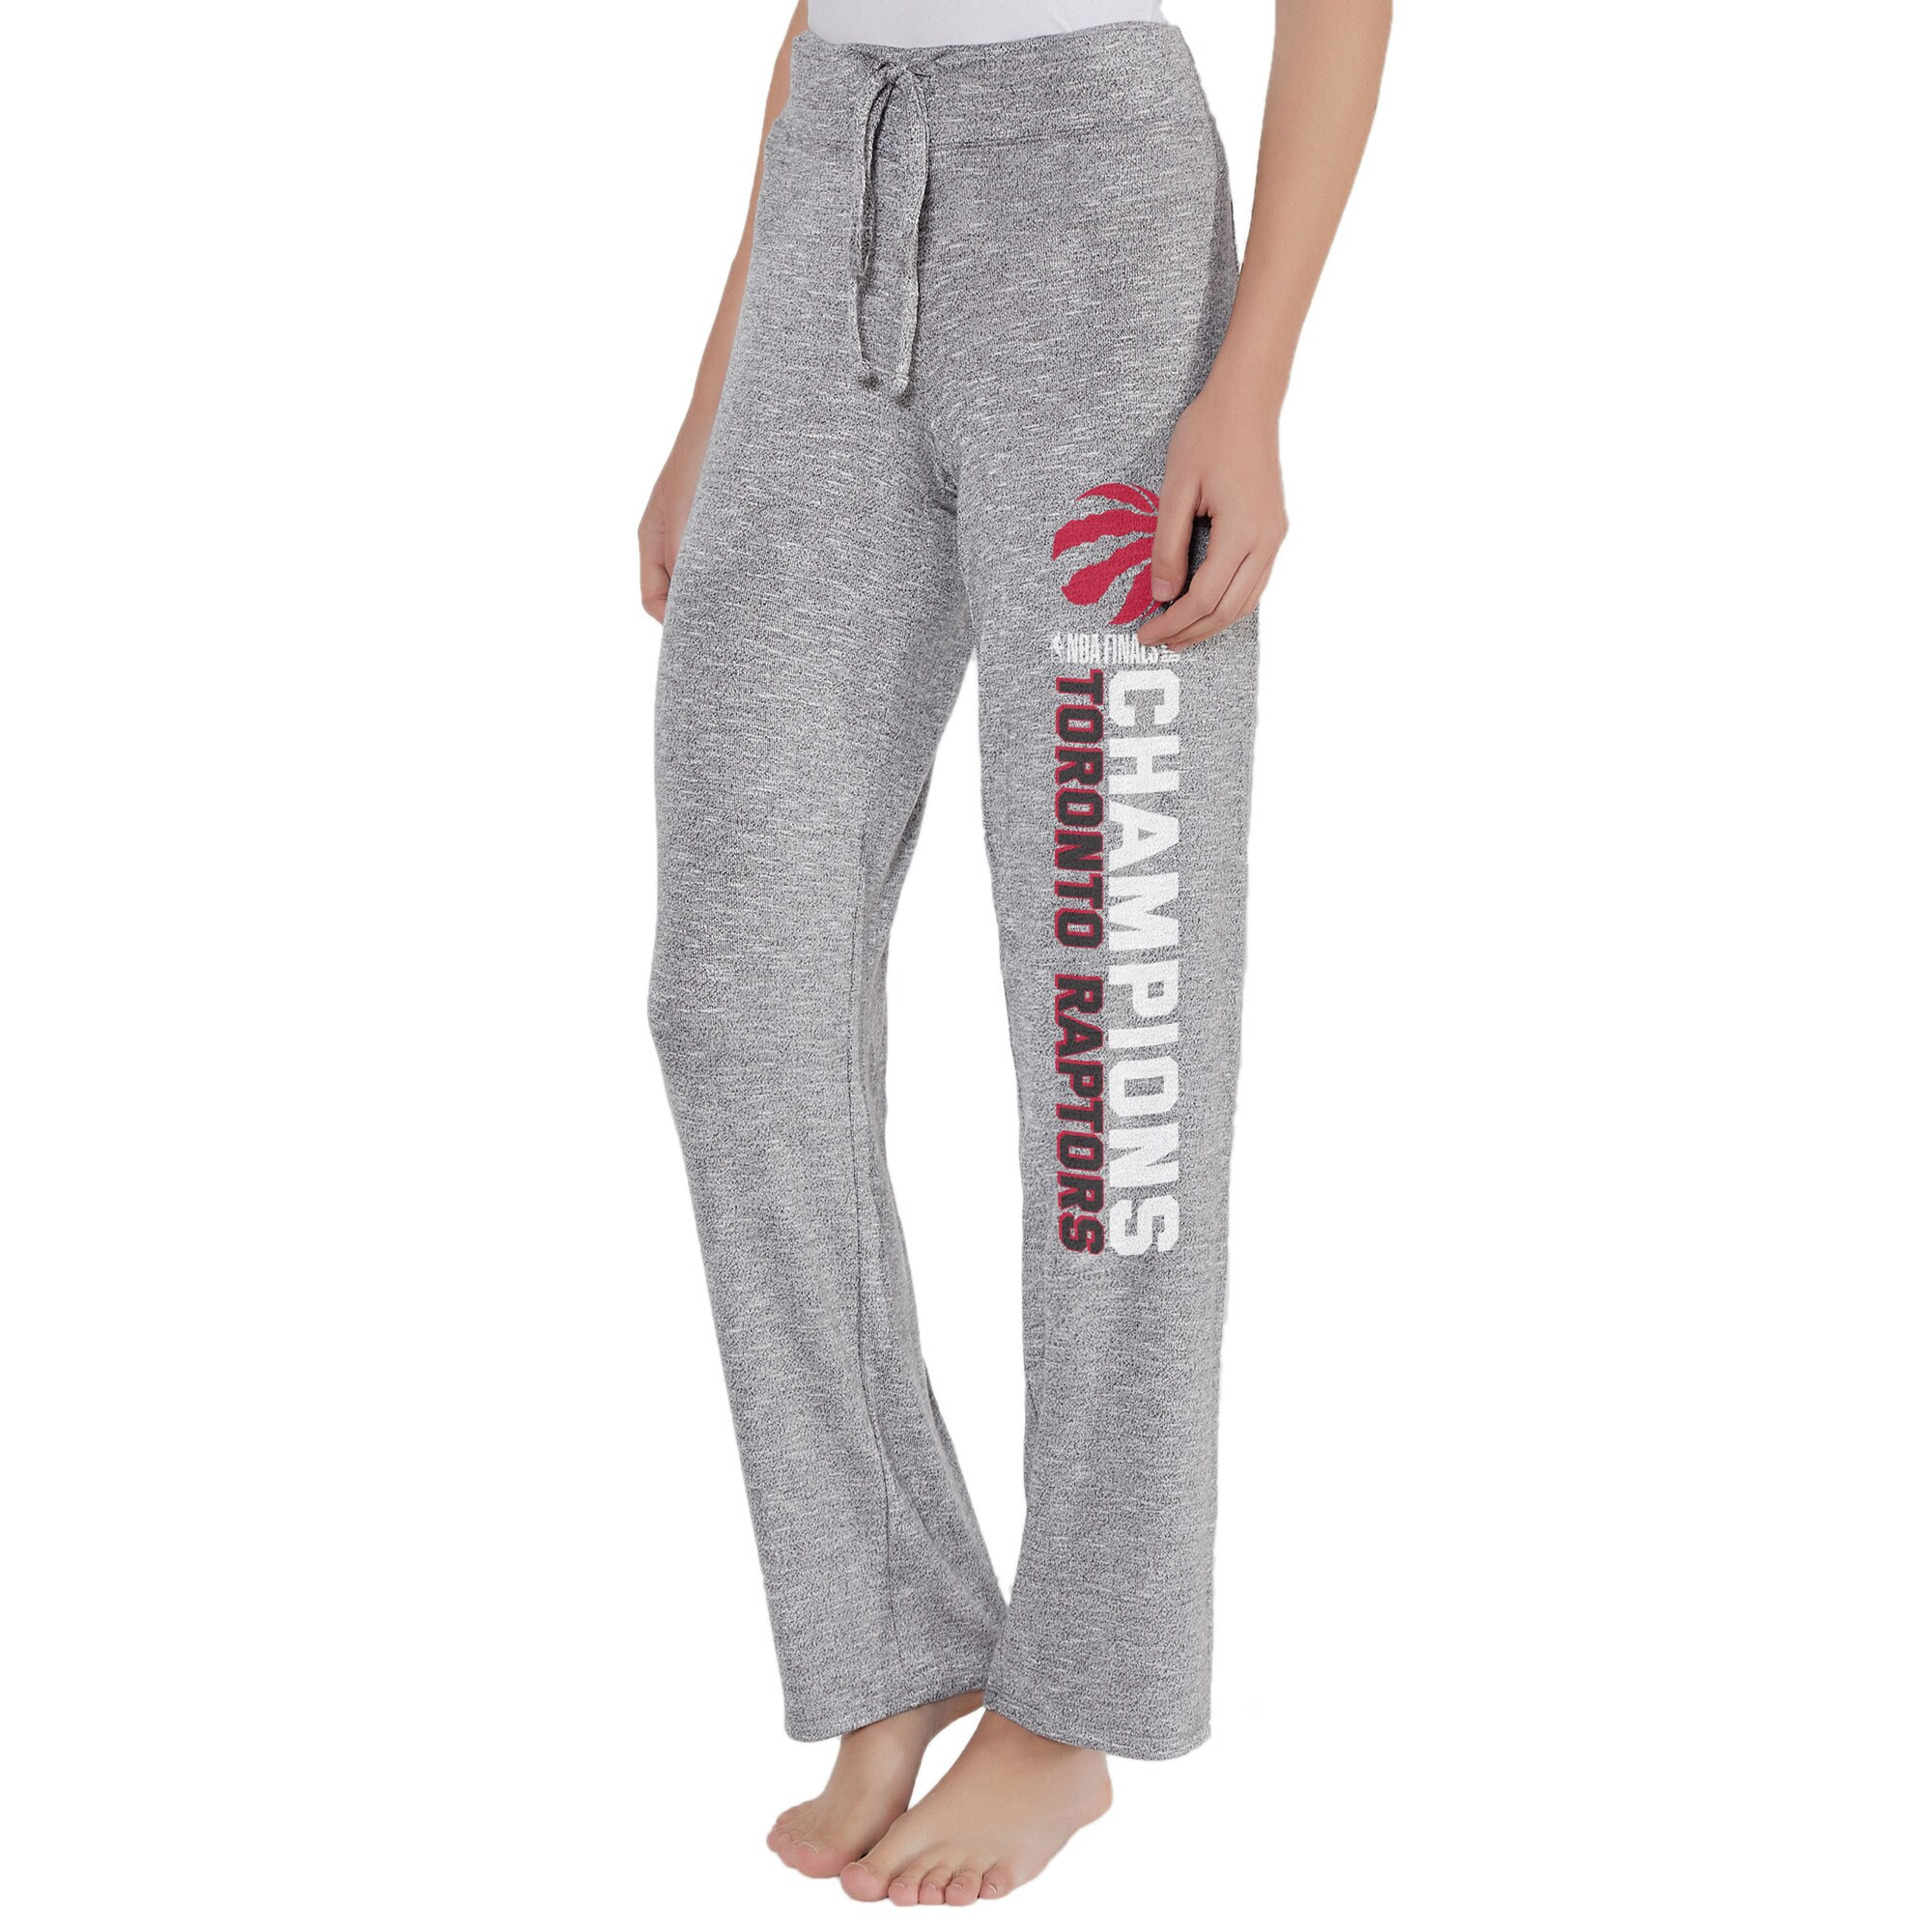 Toronto Raptors Concepts Sport Women's 2019 NBA Finals Champions Layover Knit Pants - Gray